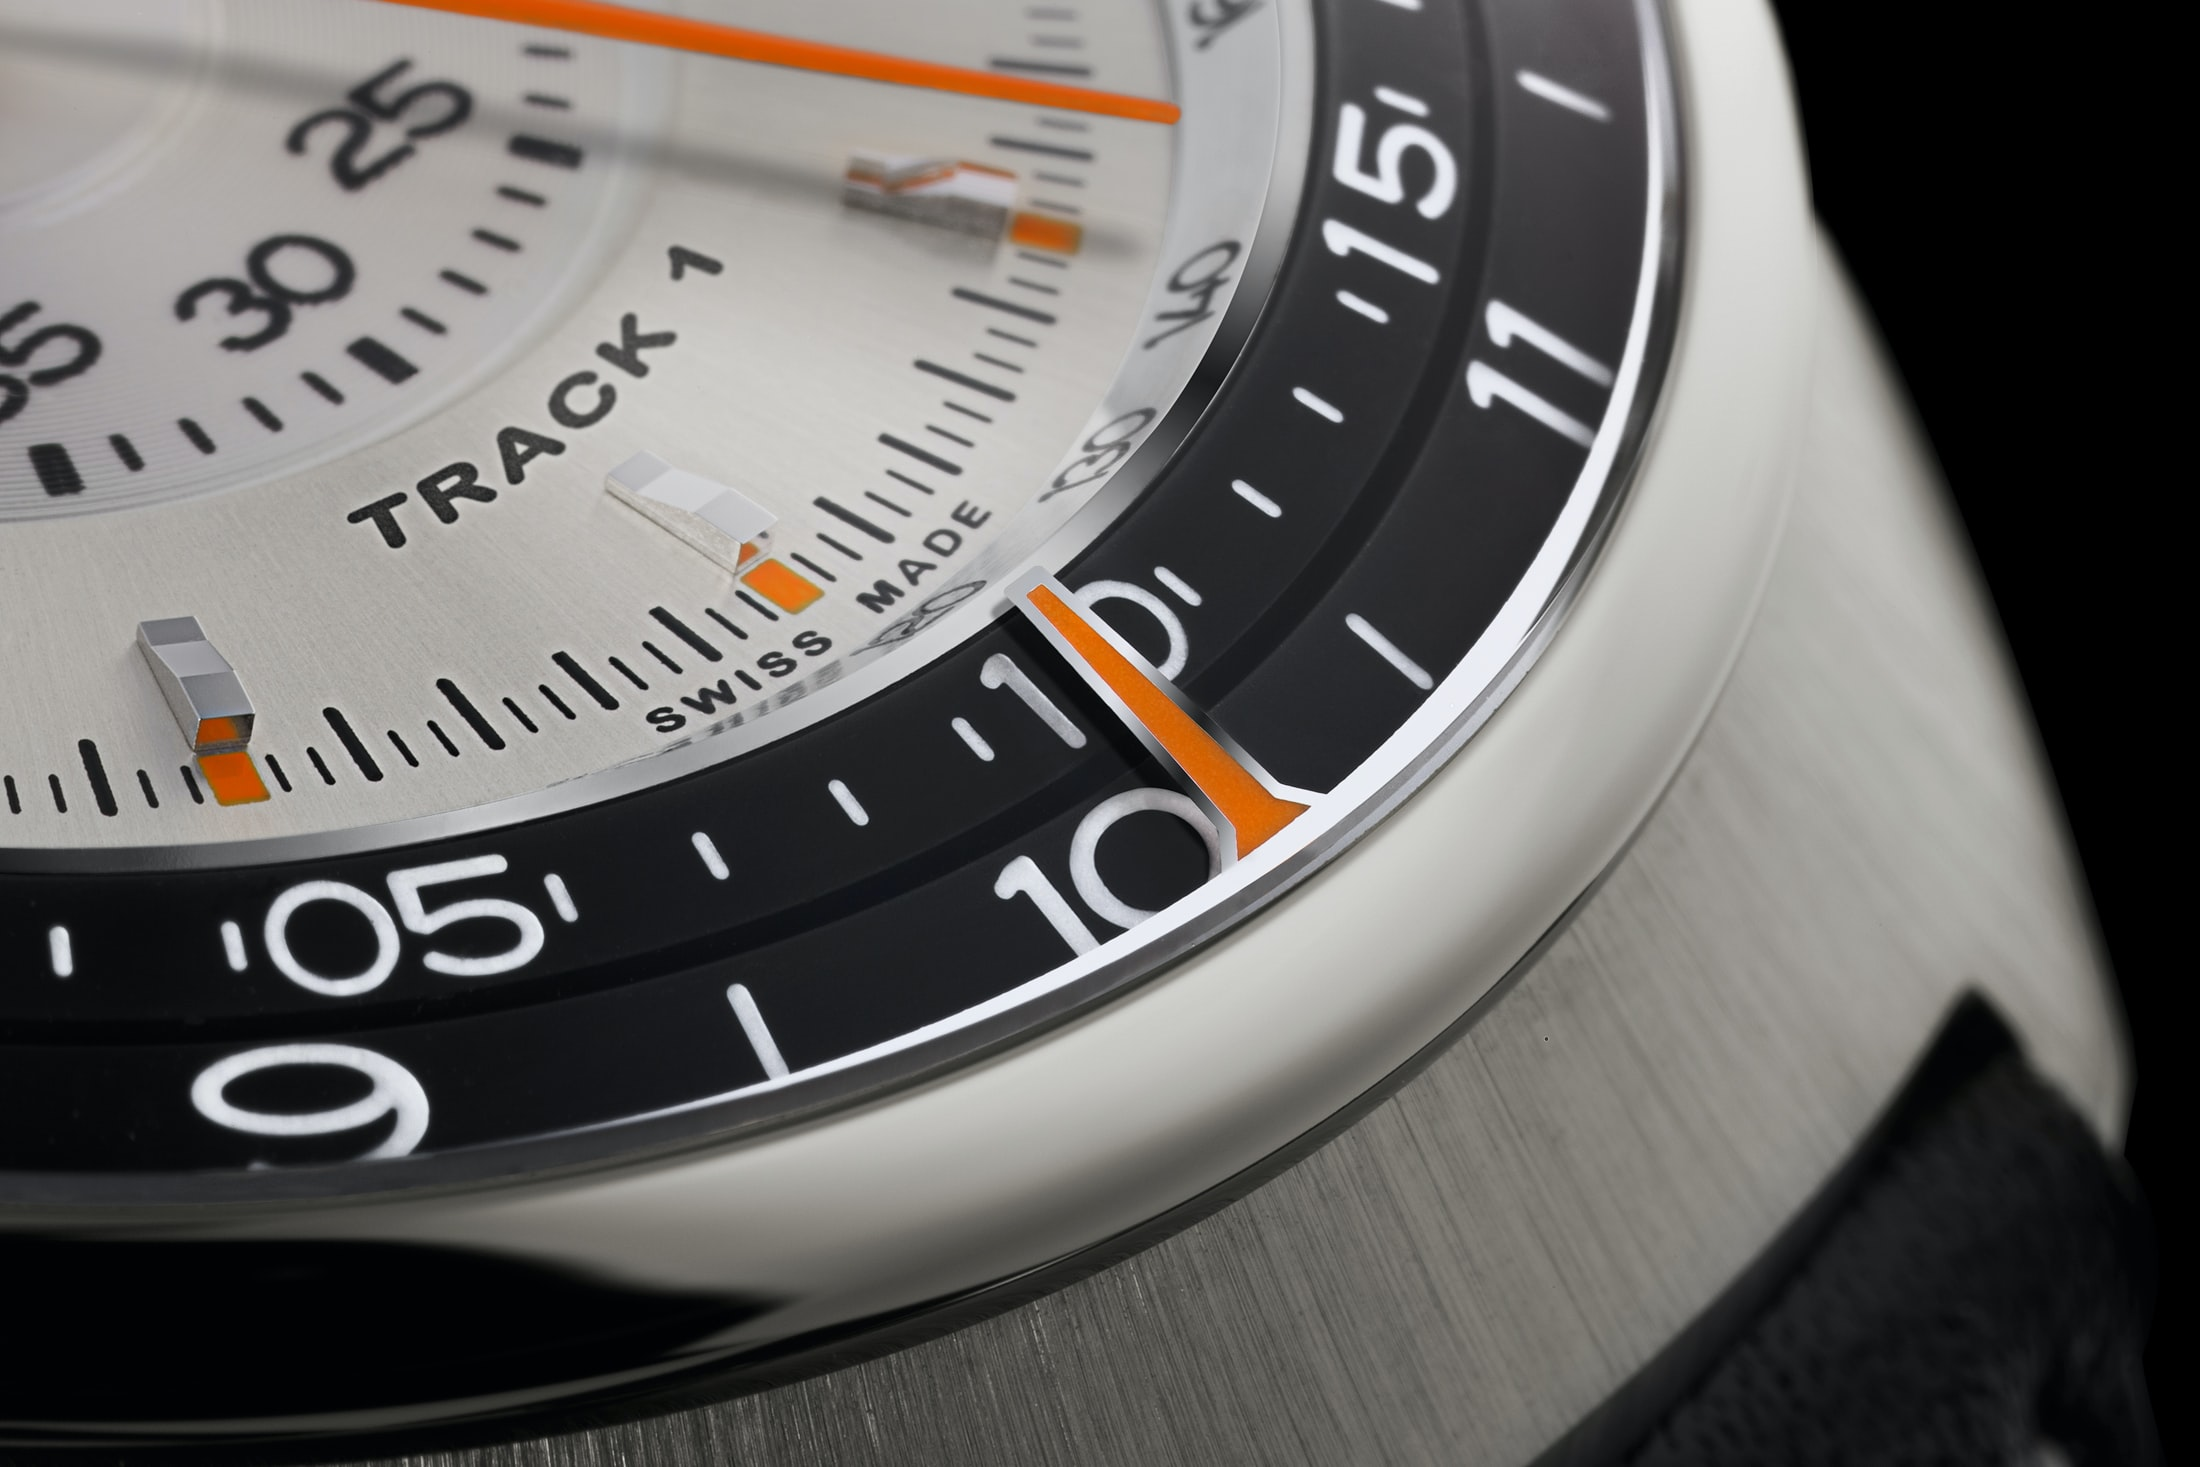 singer track1 chronograph display Introducing: The Singer Track1 Chronograph, Featuring The AgenGraphe Caliber By Jean-Marc Wiederrecht Introducing: The Singer Track1 Chronograph, Featuring The AgenGraphe Caliber By Jean-Marc Wiederrecht singer 04